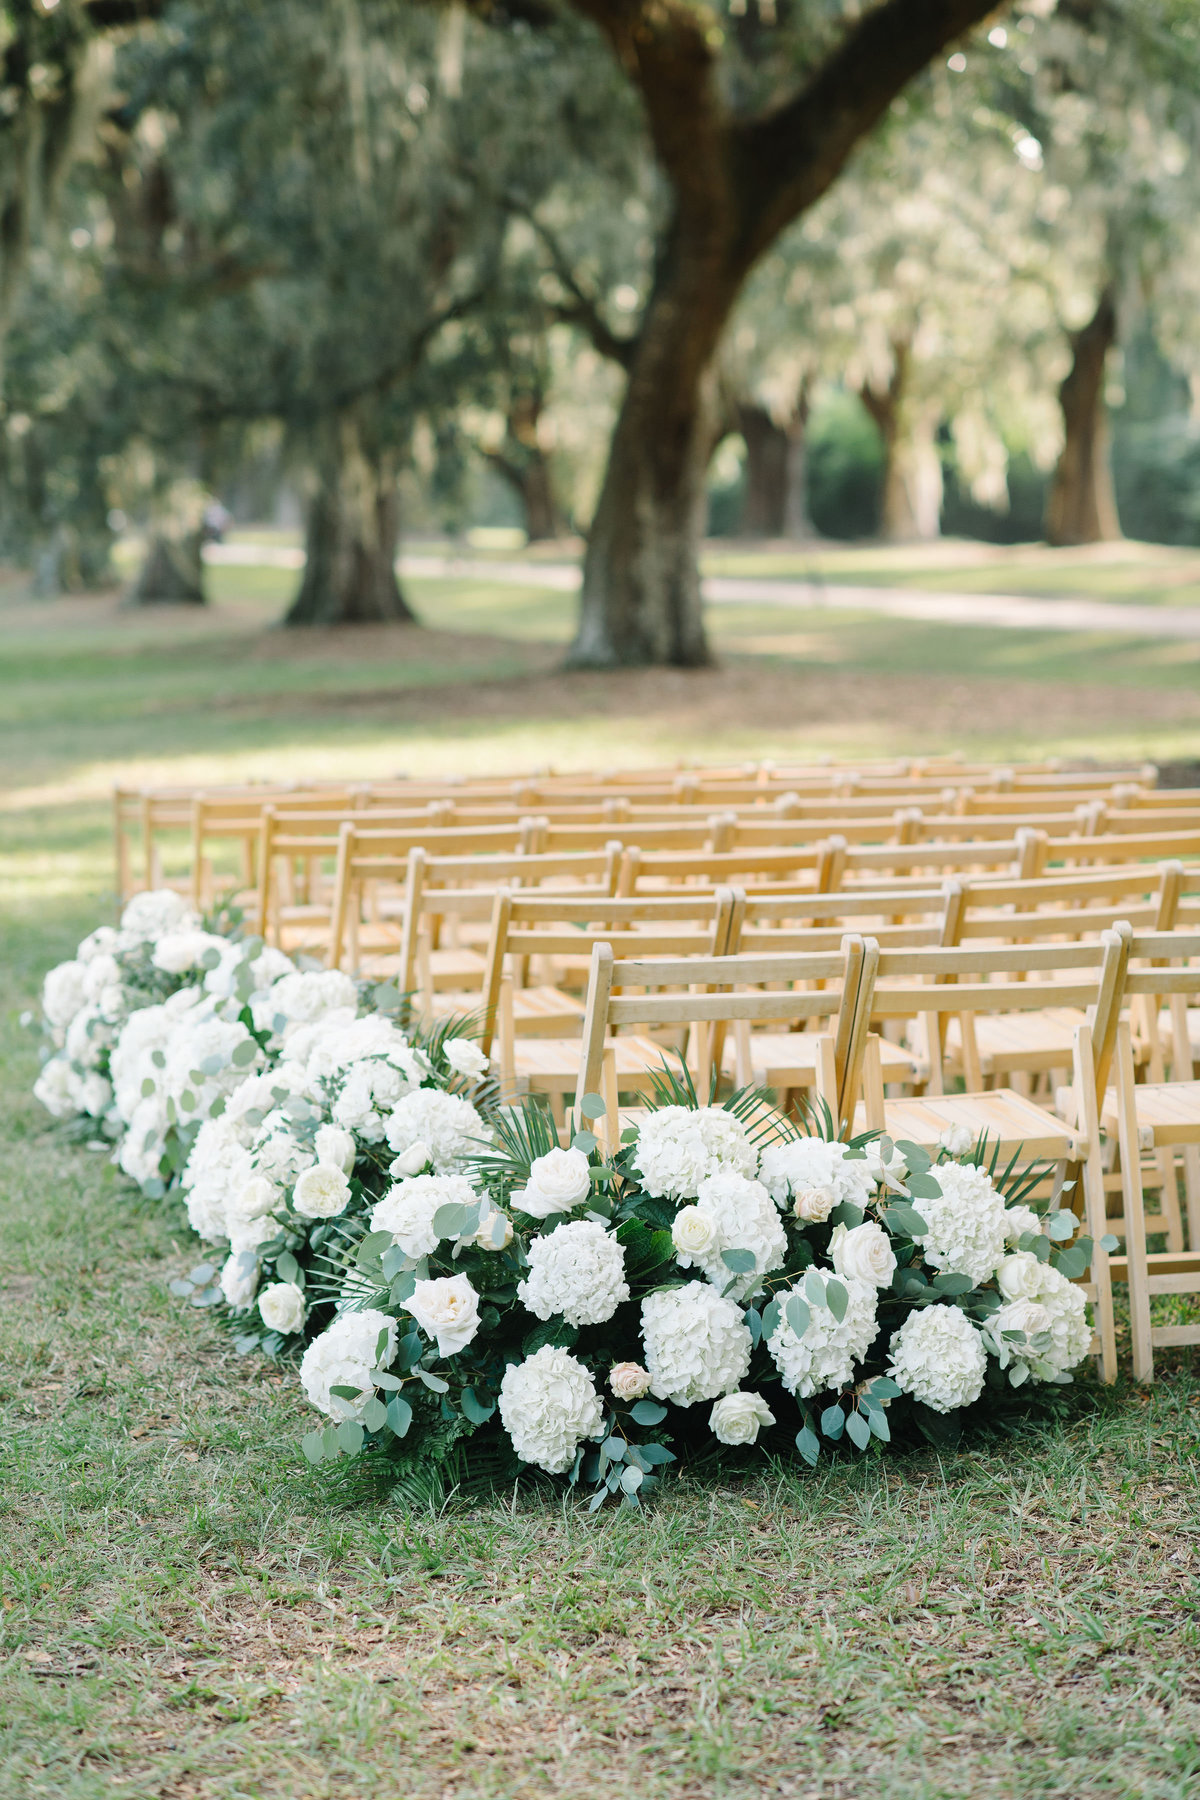 Wedding Ceremony Floral Lined Aisle with White Hydrangeas and Greenery